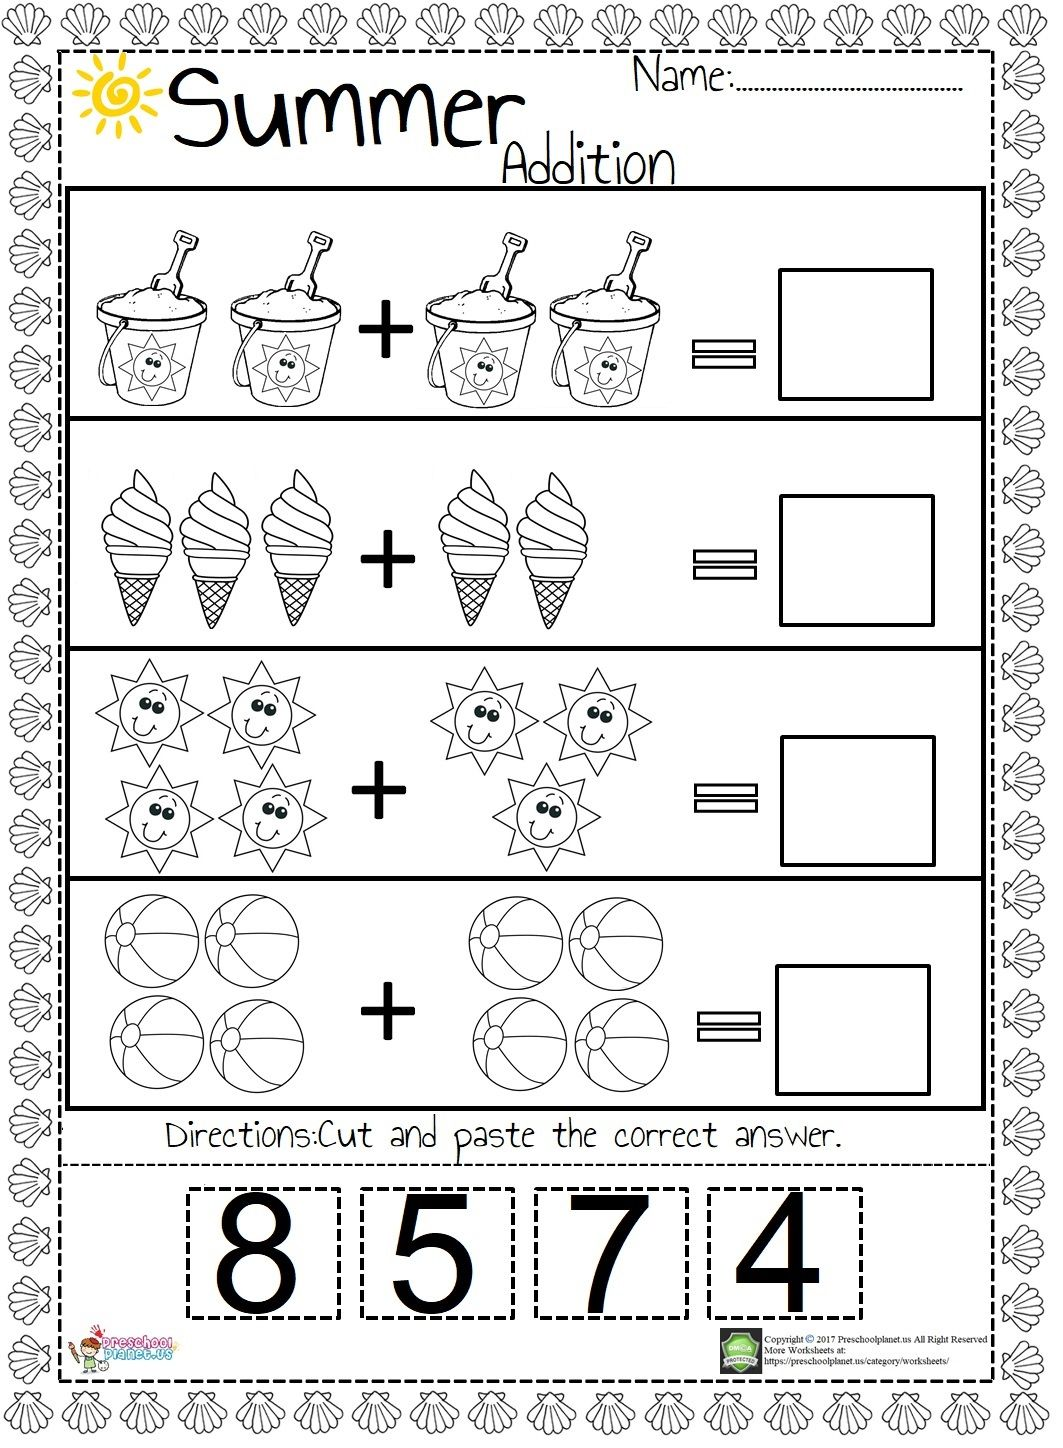 We Prepared An Easy And Funny Summer Themed Addition Worksheet For Preschool And Kindergarten